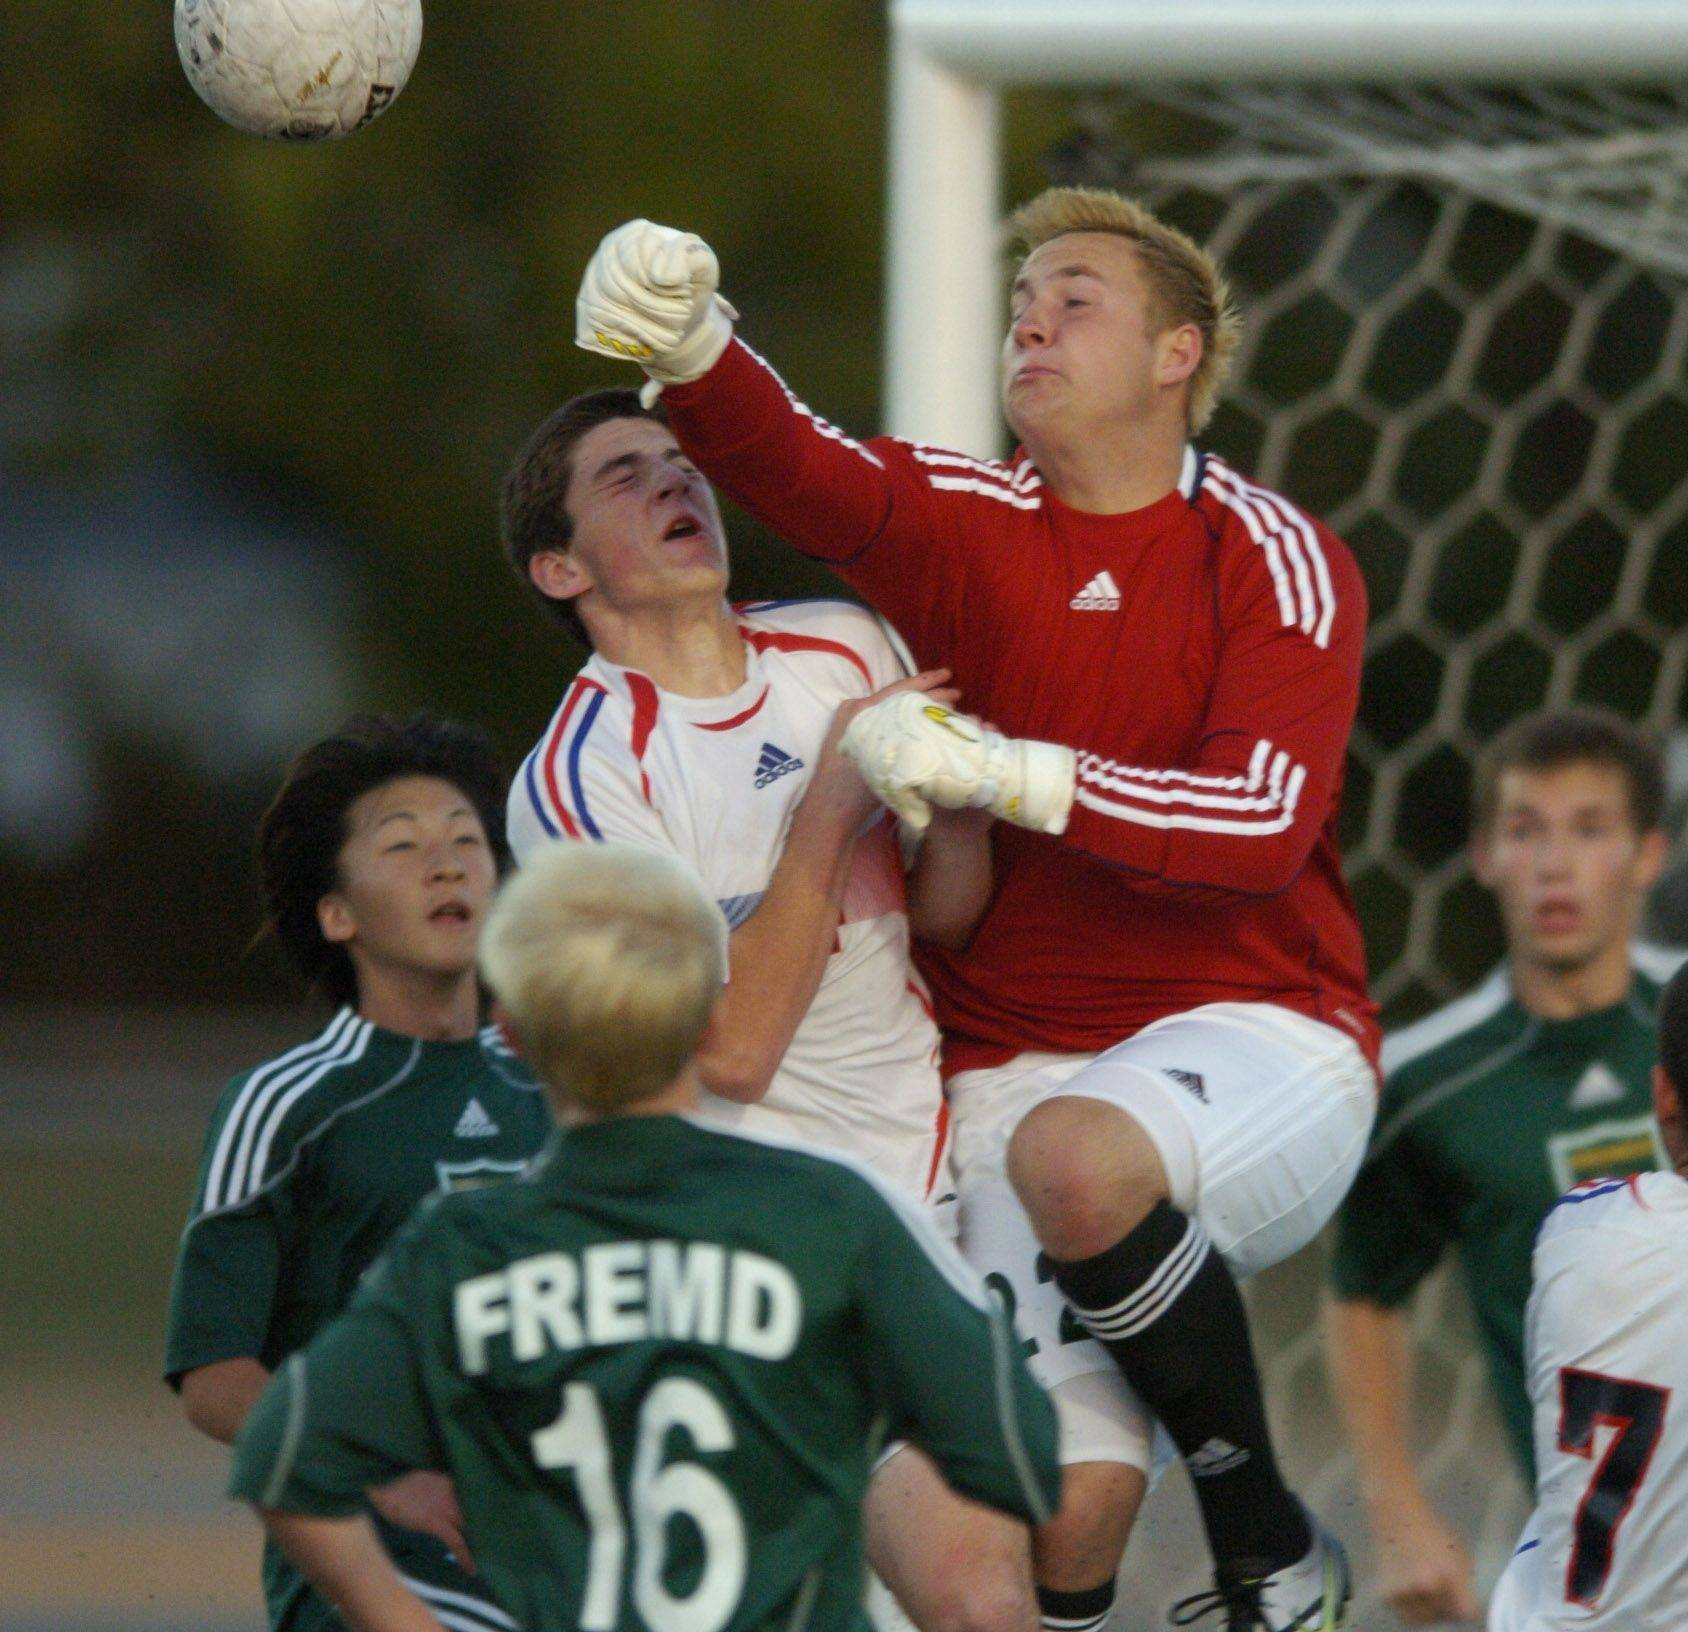 Fremd goalkeeper Scott Sutarik bats the ball away as Conant's Joey Bosco makes contact during Tuesday's game.